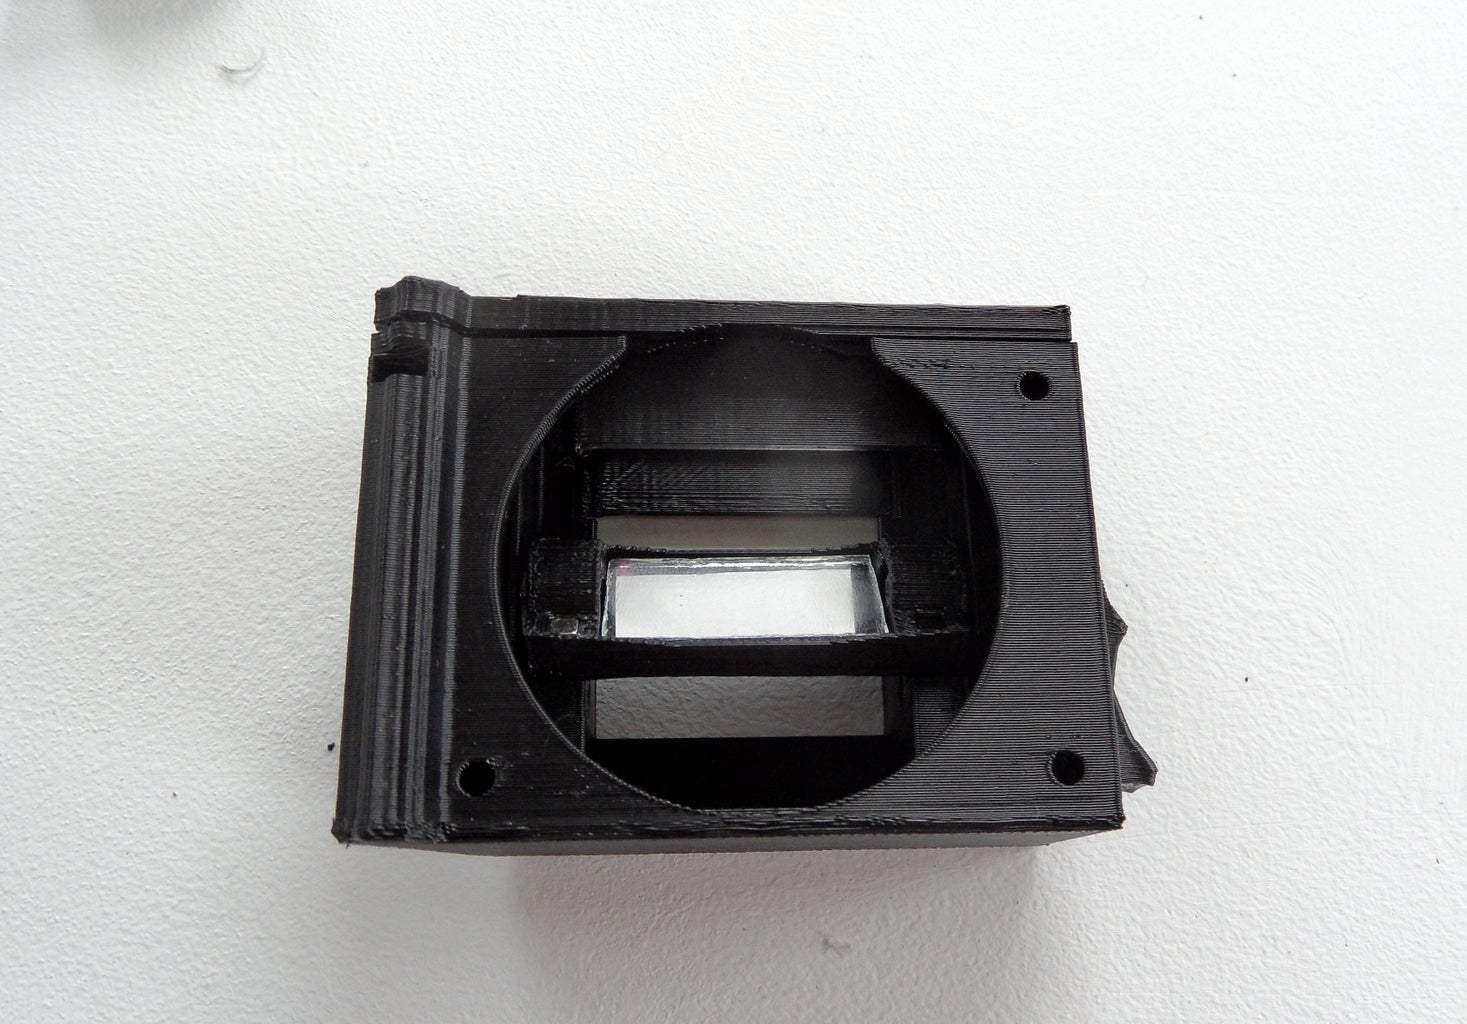 The Viewfinder